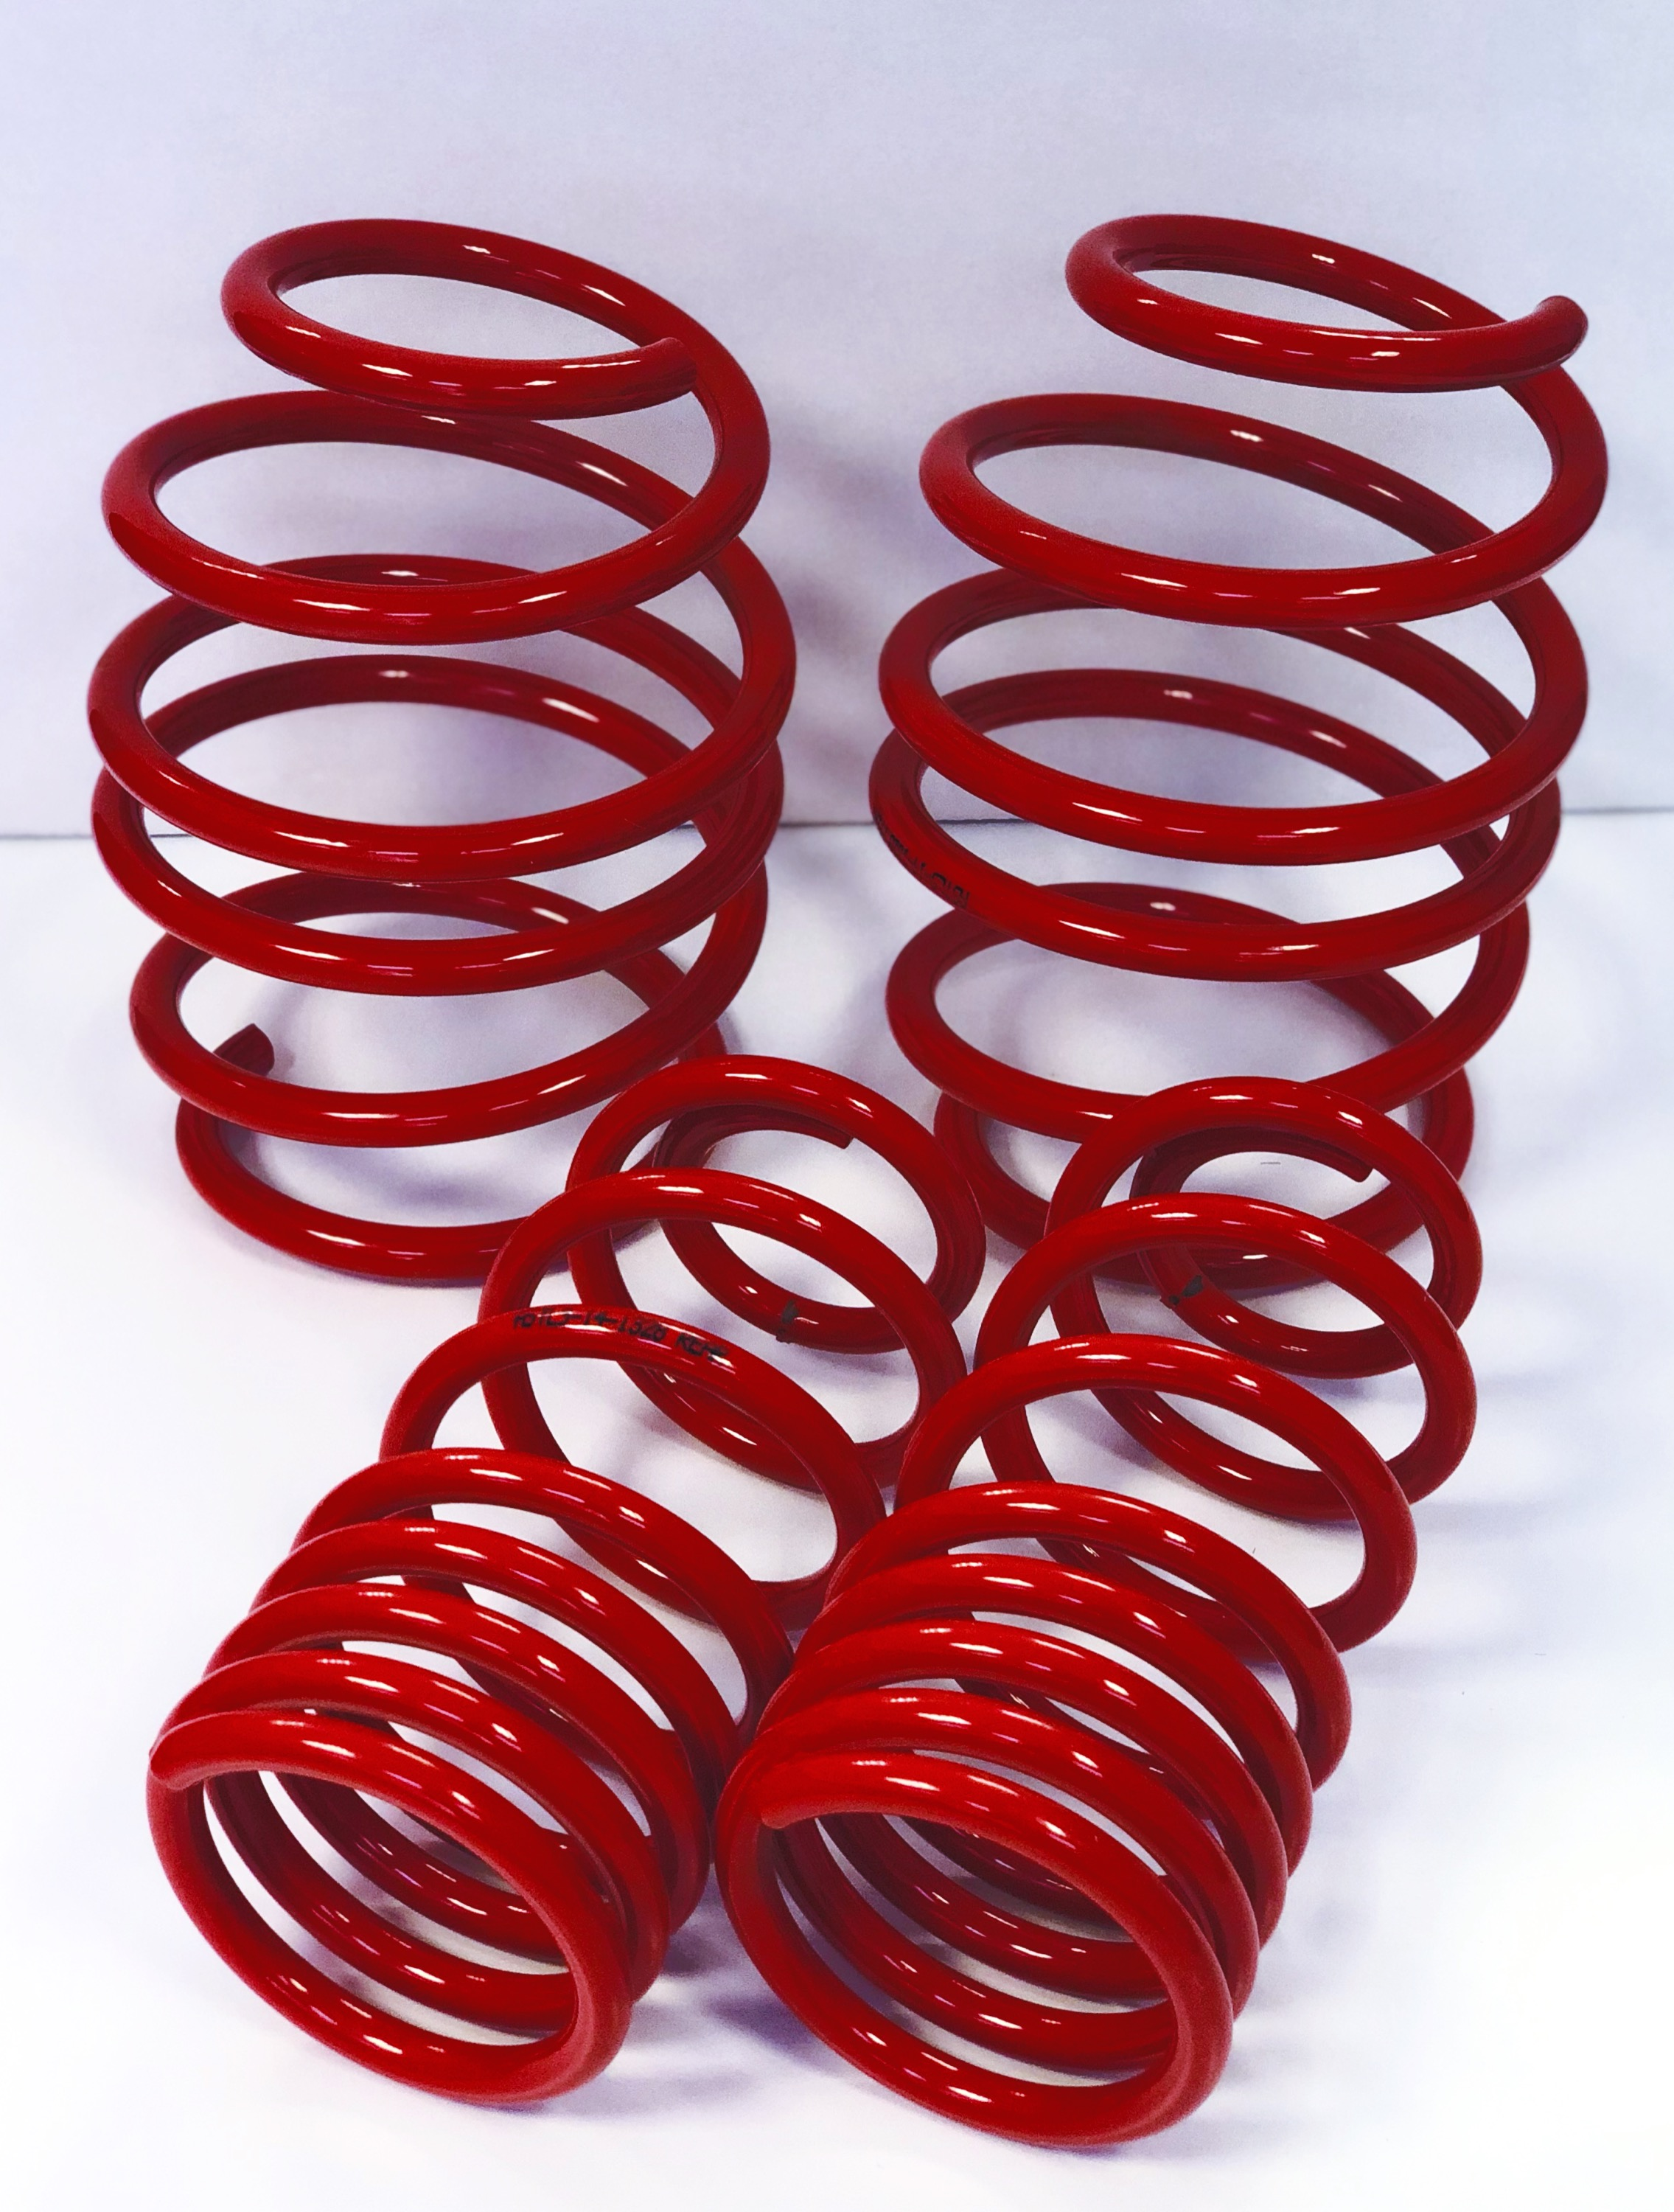 Renault CLIO AST Suspension Lowering Springs 15/20